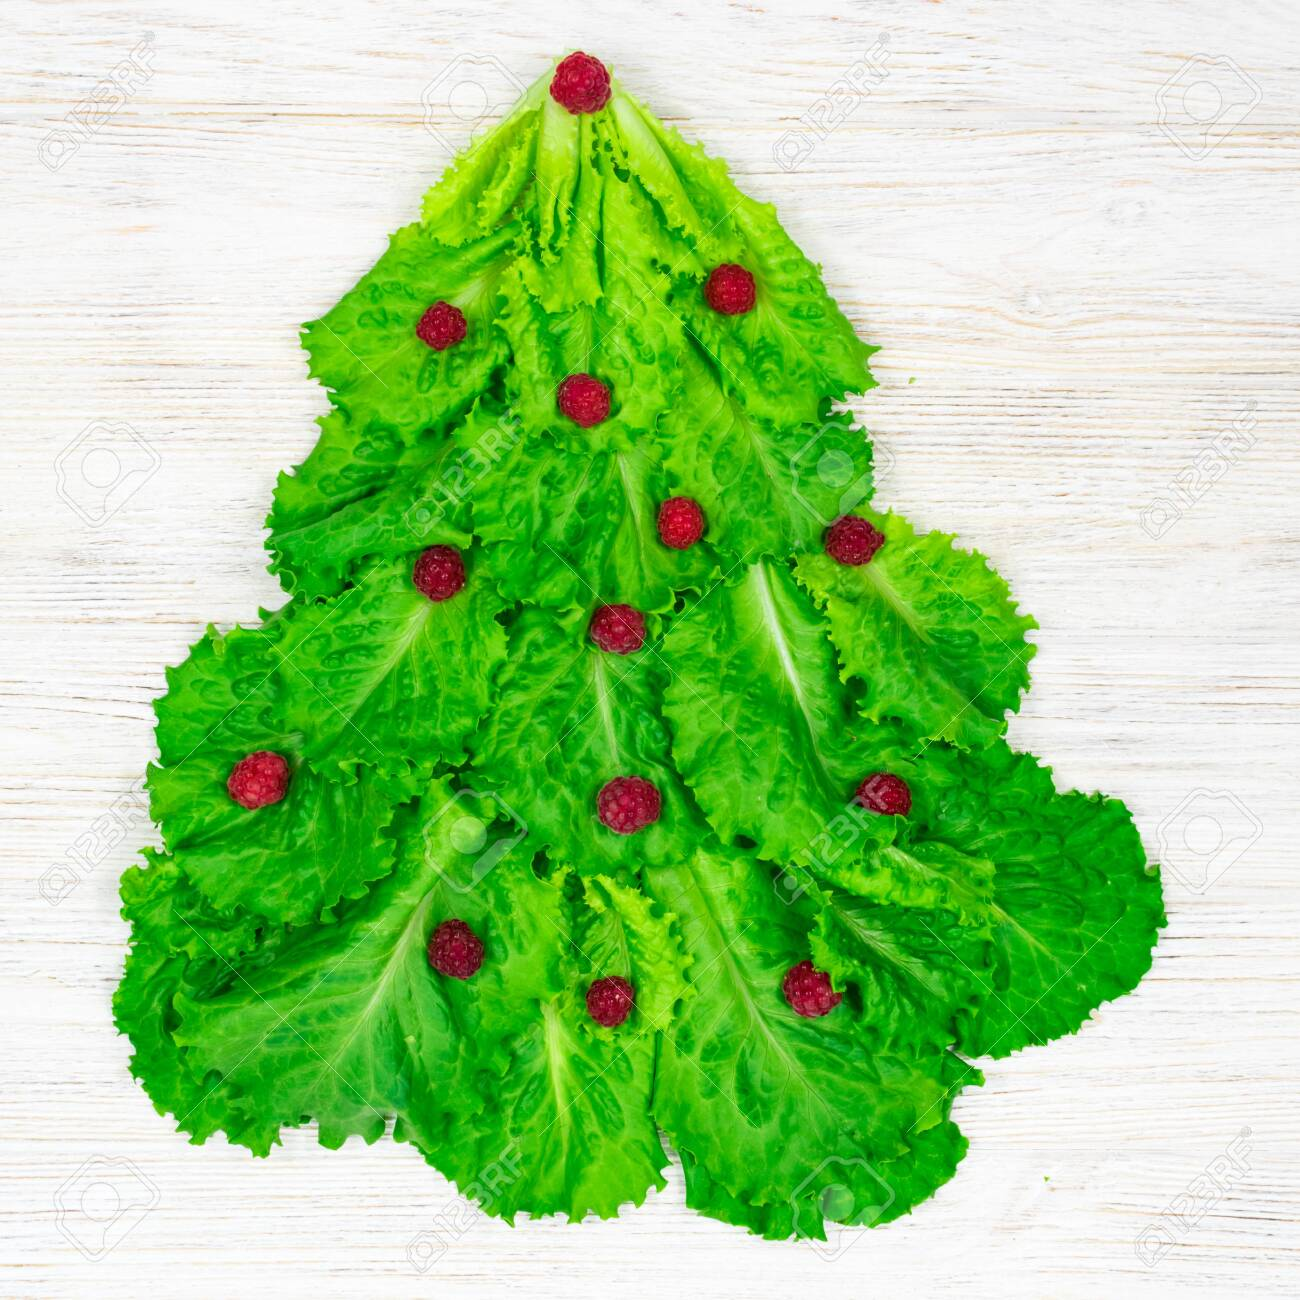 The Christmas Tree Is Lined With Green Lettuce Leaves Decorated Stock Photo Picture And Royalty Free Image Image 157144432